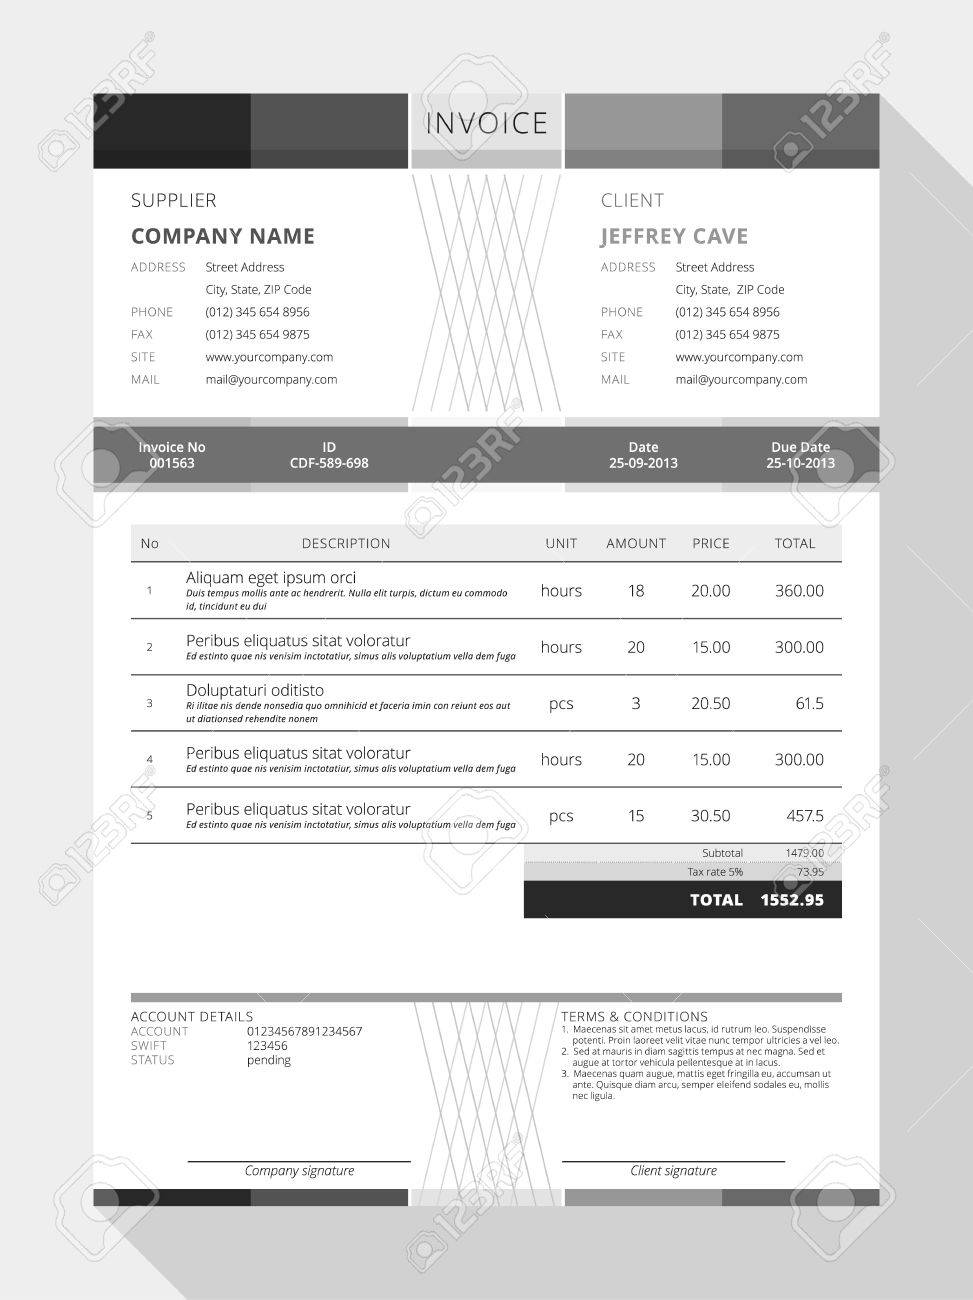 Sexygirlswallpapersus  Nice Design An Invoice  Professional Graphic Design Invoice  With Likable Vector Customizable Invoice Form Template Design Vector   Design An Invoice With Nice Sample Shipping Invoice Also Free Invoicing Software Download In Addition Free Invoicing Software For Mac And Valid Tax Invoice As Well As Factoring Vs Invoice Discounting Additionally What Is Meaning Of Invoice From Happytomco With Sexygirlswallpapersus  Likable Design An Invoice  Professional Graphic Design Invoice  With Nice Vector Customizable Invoice Form Template Design Vector   Design An Invoice And Nice Sample Shipping Invoice Also Free Invoicing Software Download In Addition Free Invoicing Software For Mac From Happytomco